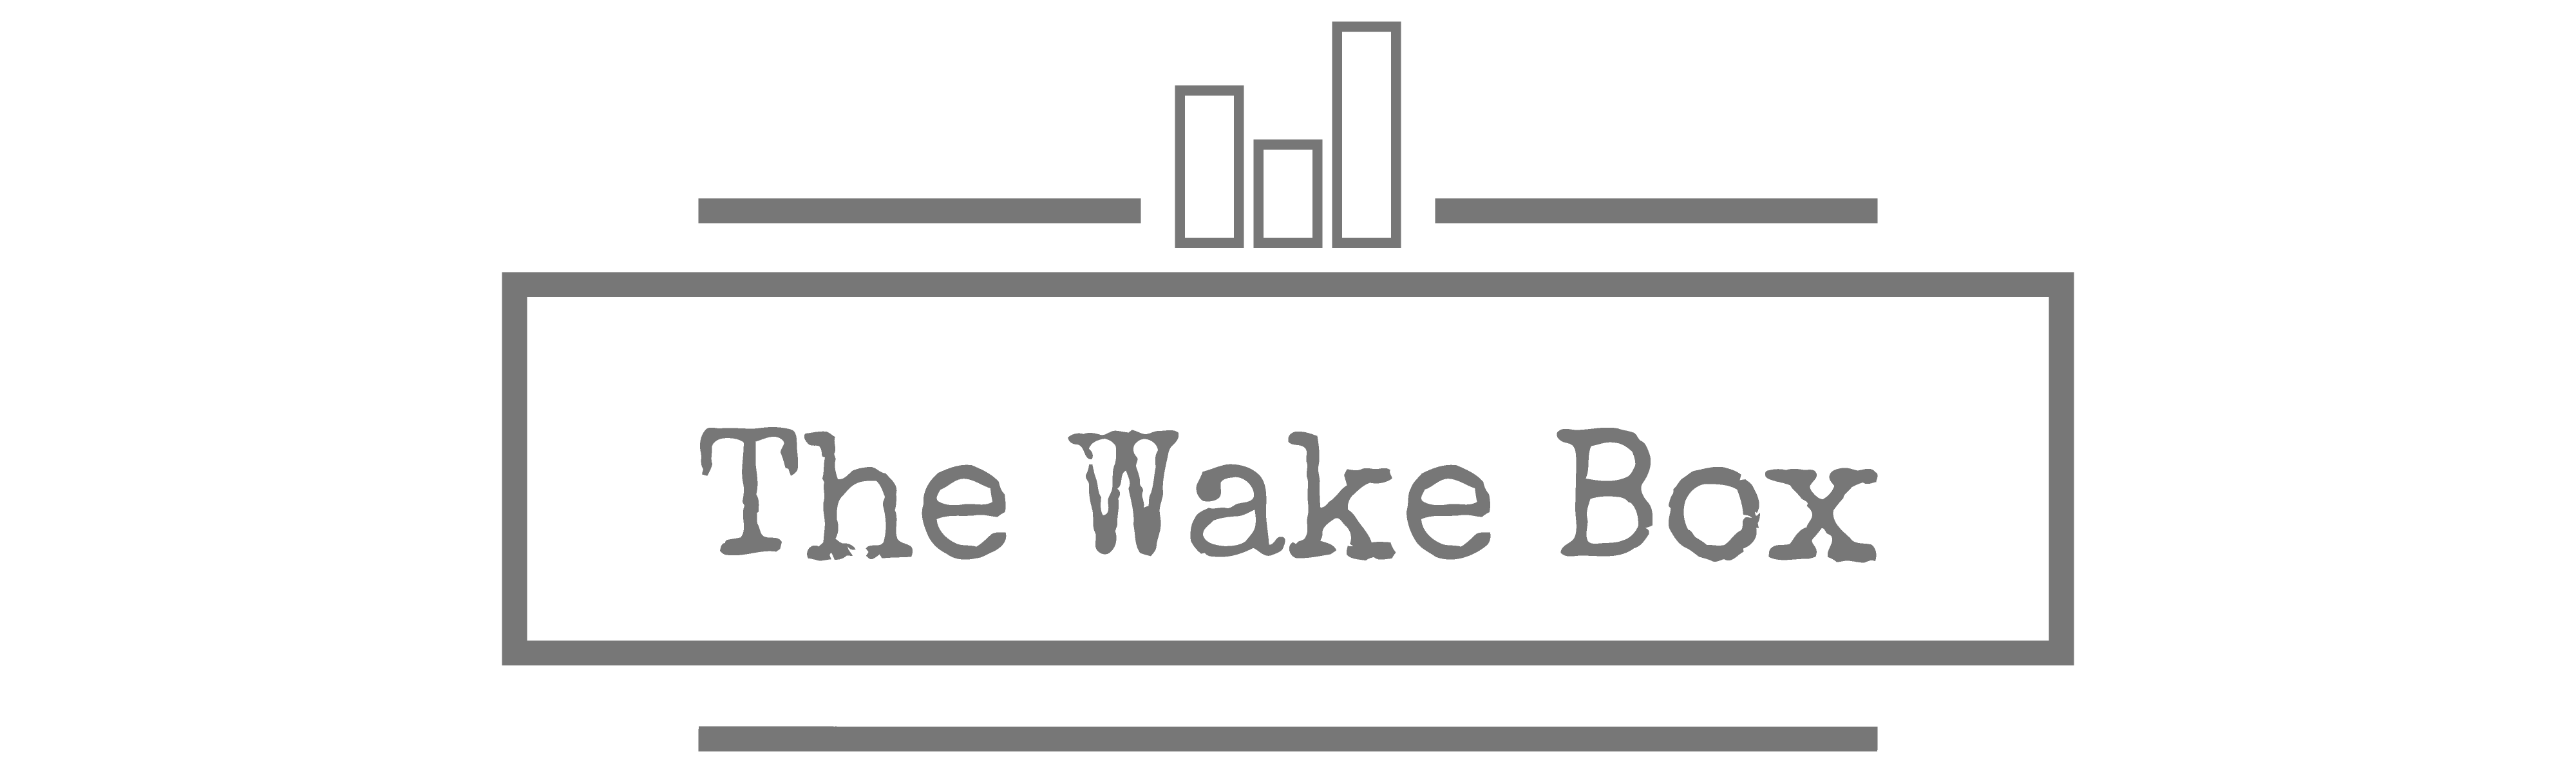 WakeBox